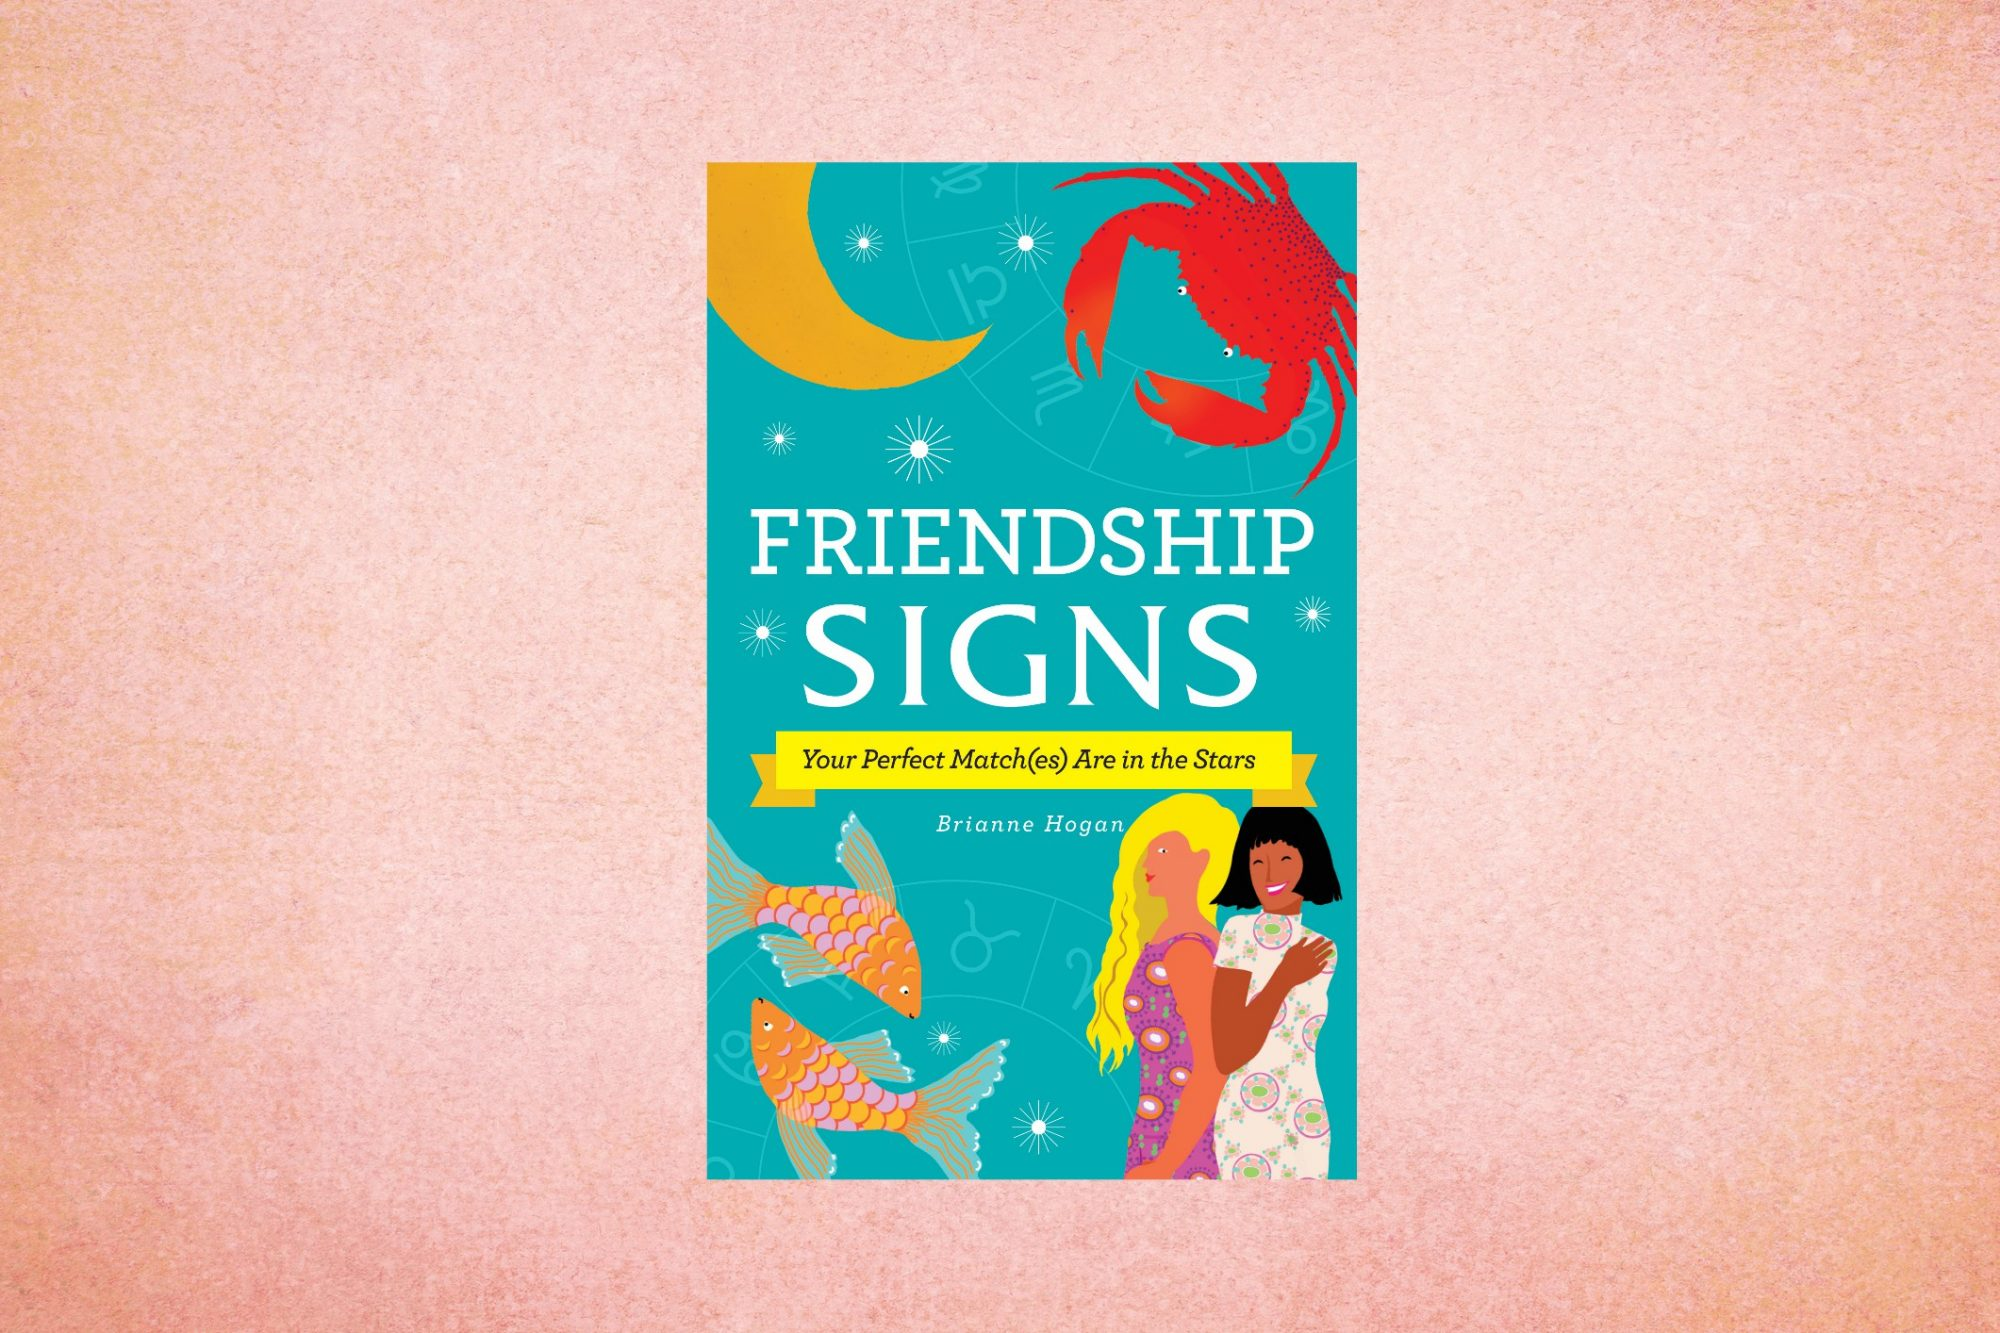 friendship-signs-cover.jpg